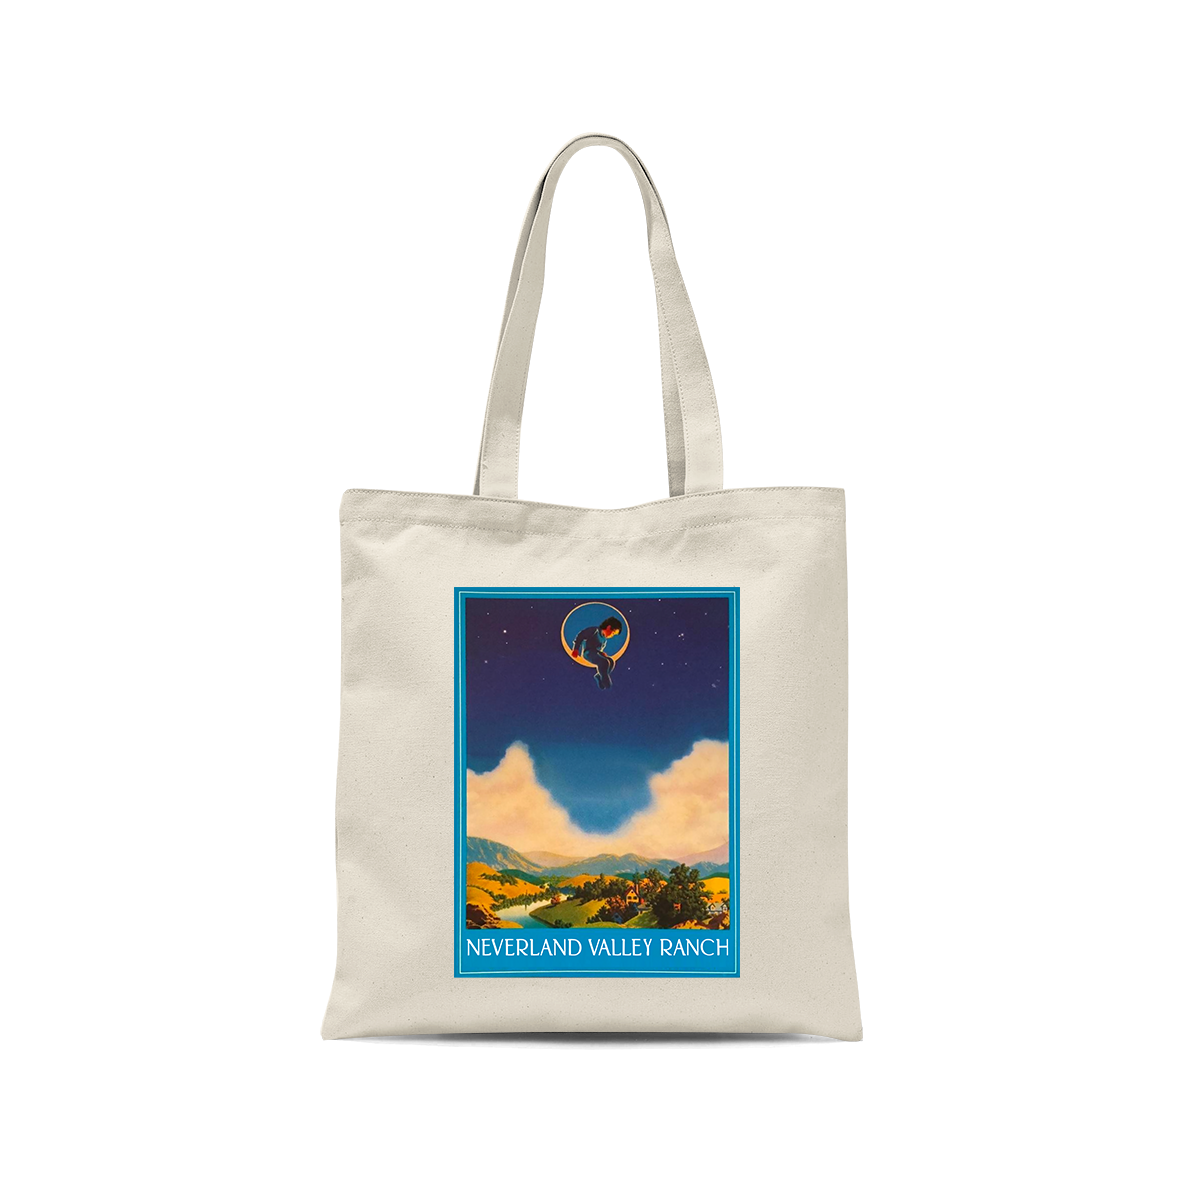 Neverland Valley Ranch™ Tote Bag